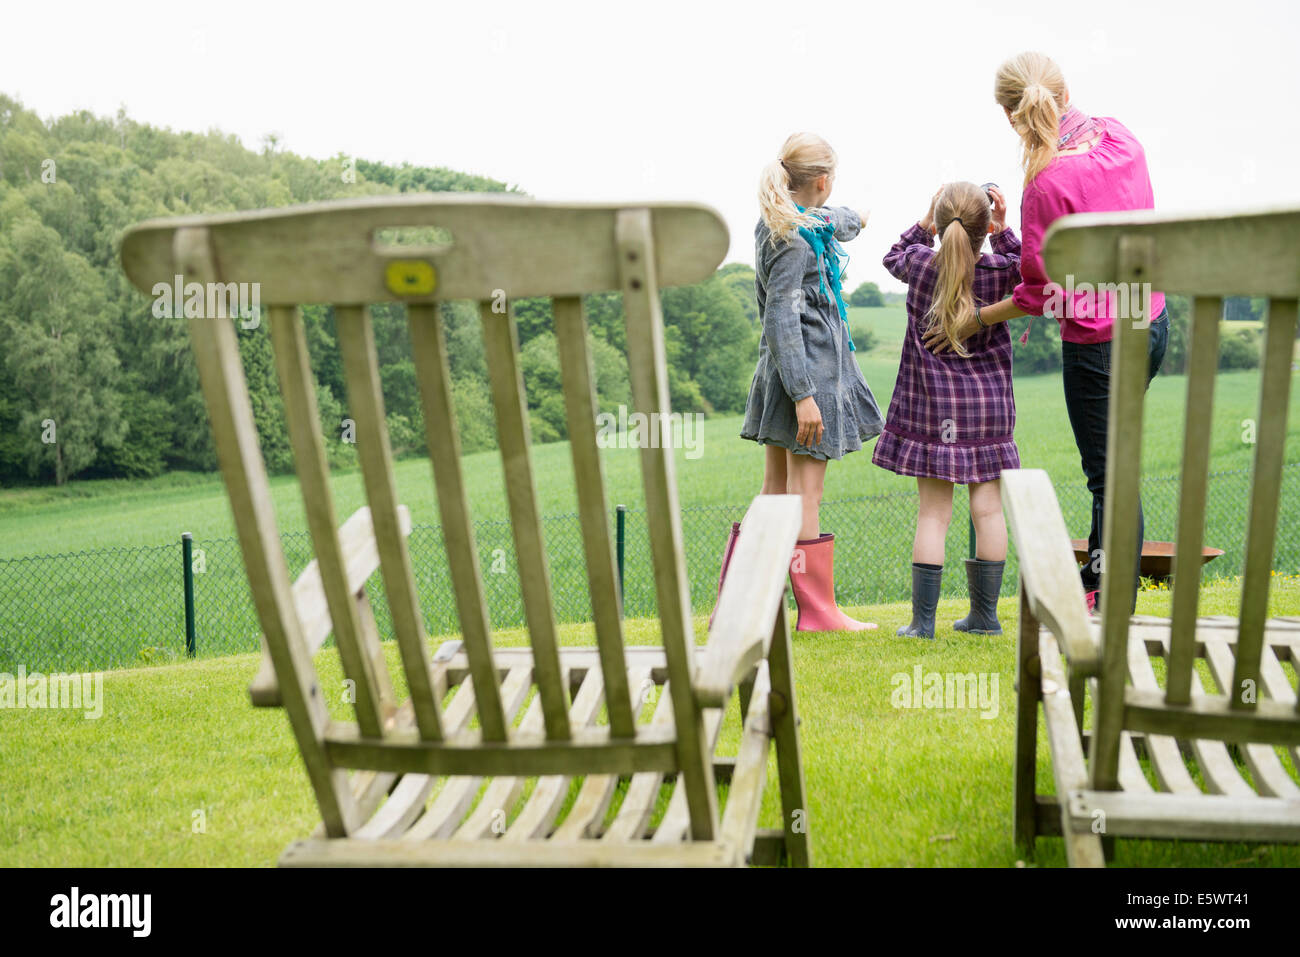 Mother and daughters using binoculars, chairs in foreground - Stock Image